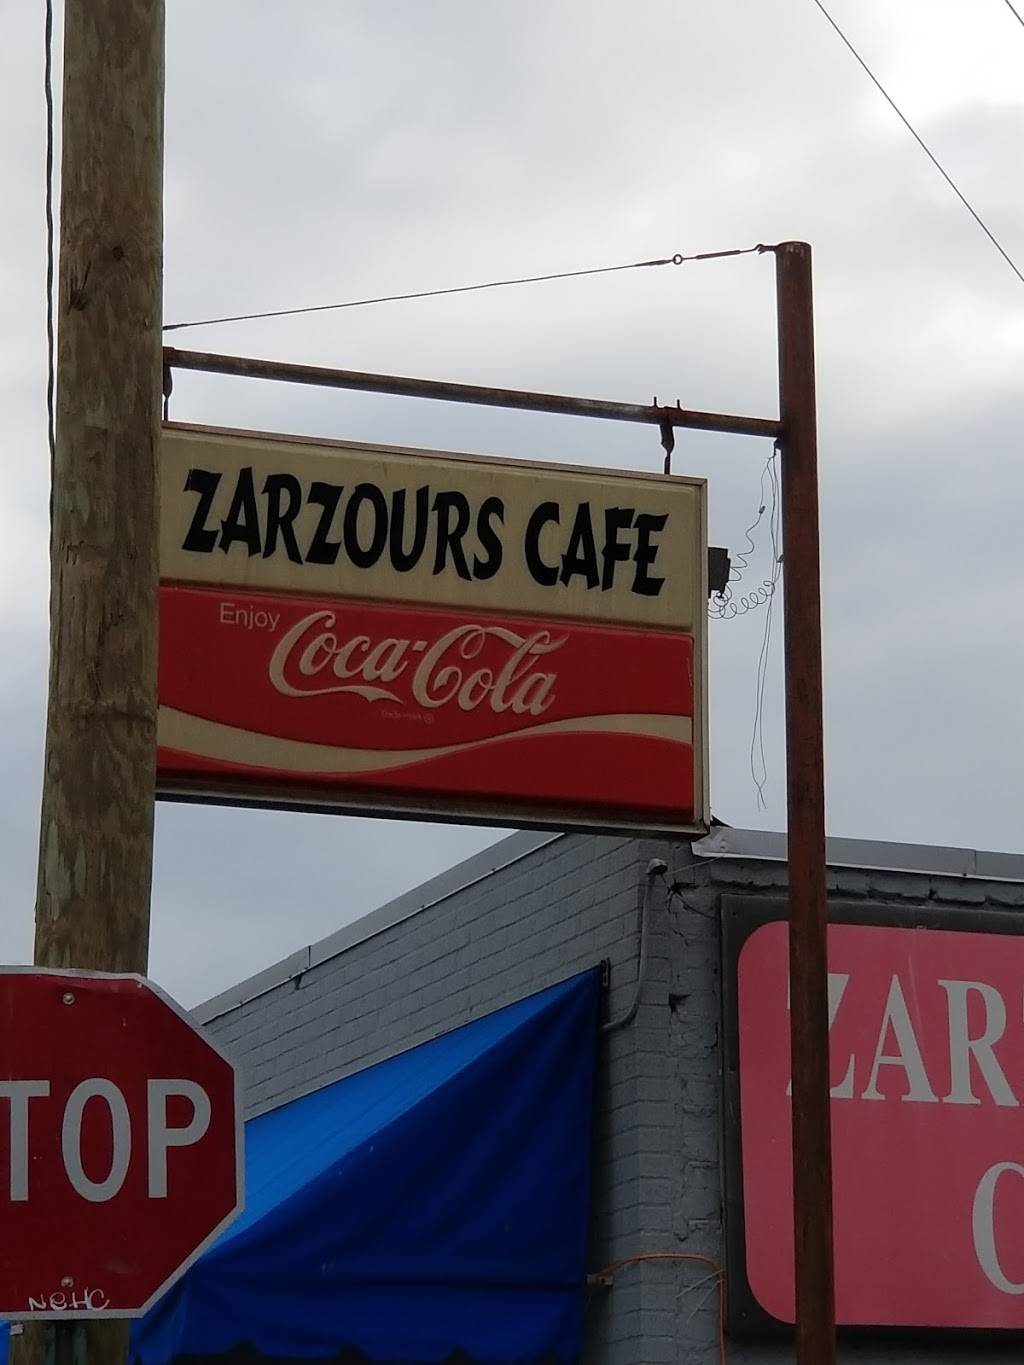 Zarzours   restaurant   1627 Rossville Ave, Chattanooga, TN 37408, USA   4232660424 OR +1 423-266-0424